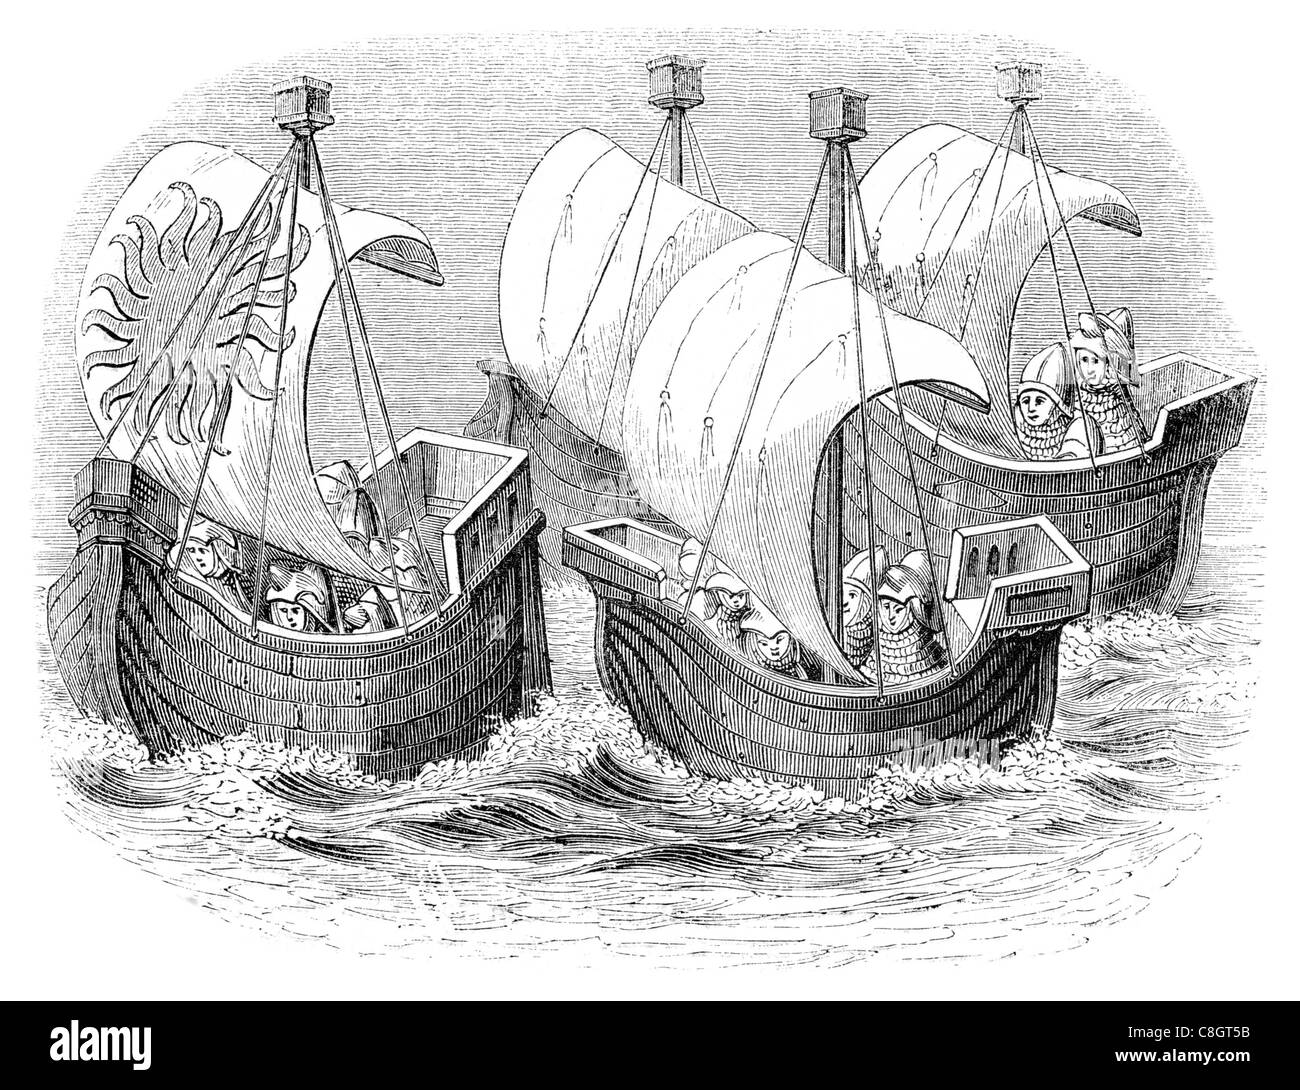 Ships of the time of Richard II sail sailing sailor ship shipping war marine Naval Navy vessel cargo goods seas - Stock Image